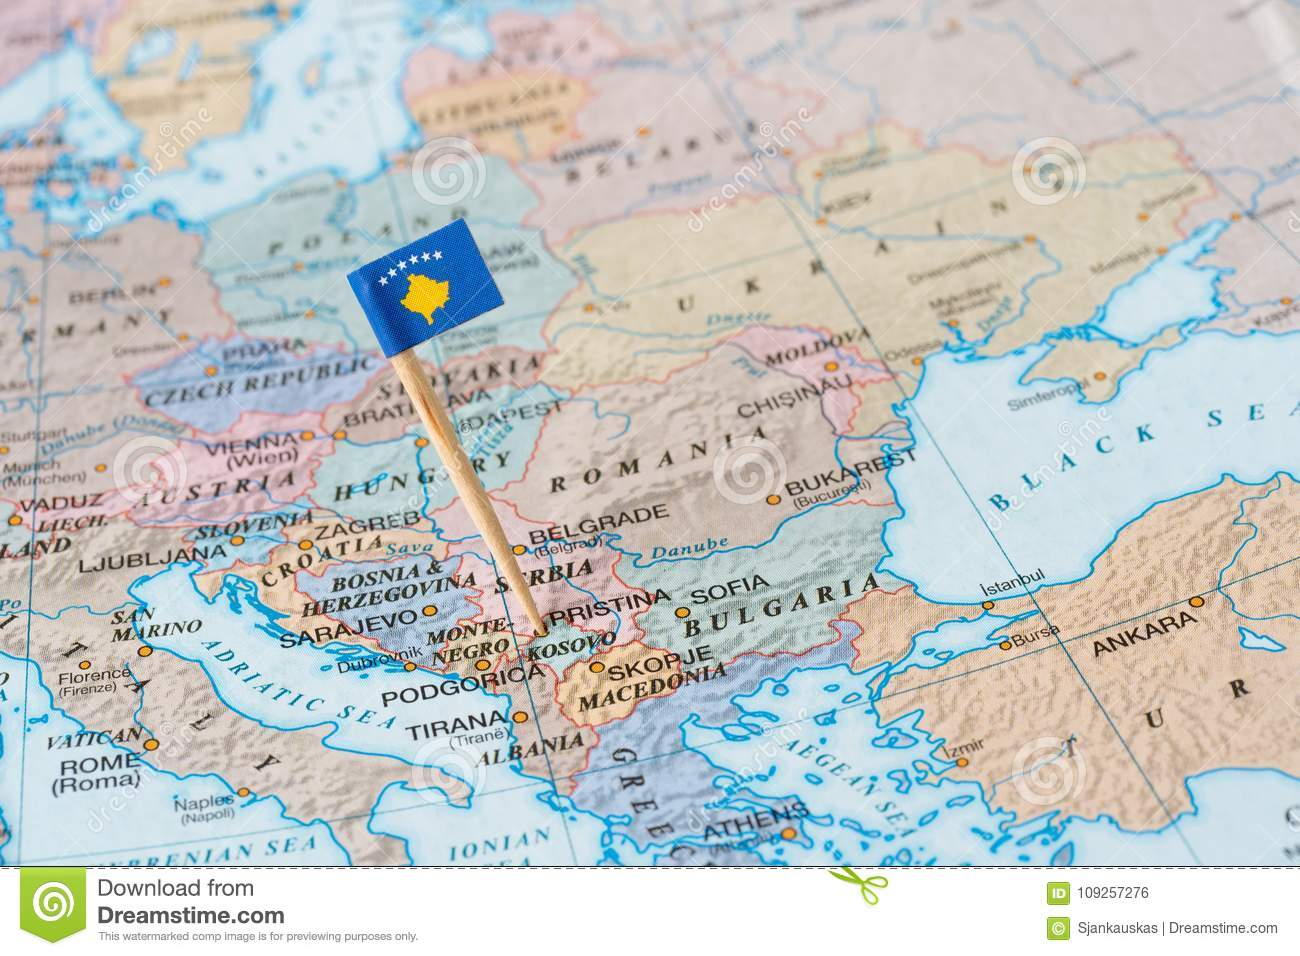 Kosovo Map Photos Free Royalty Free Stock Photos From Dreamstime